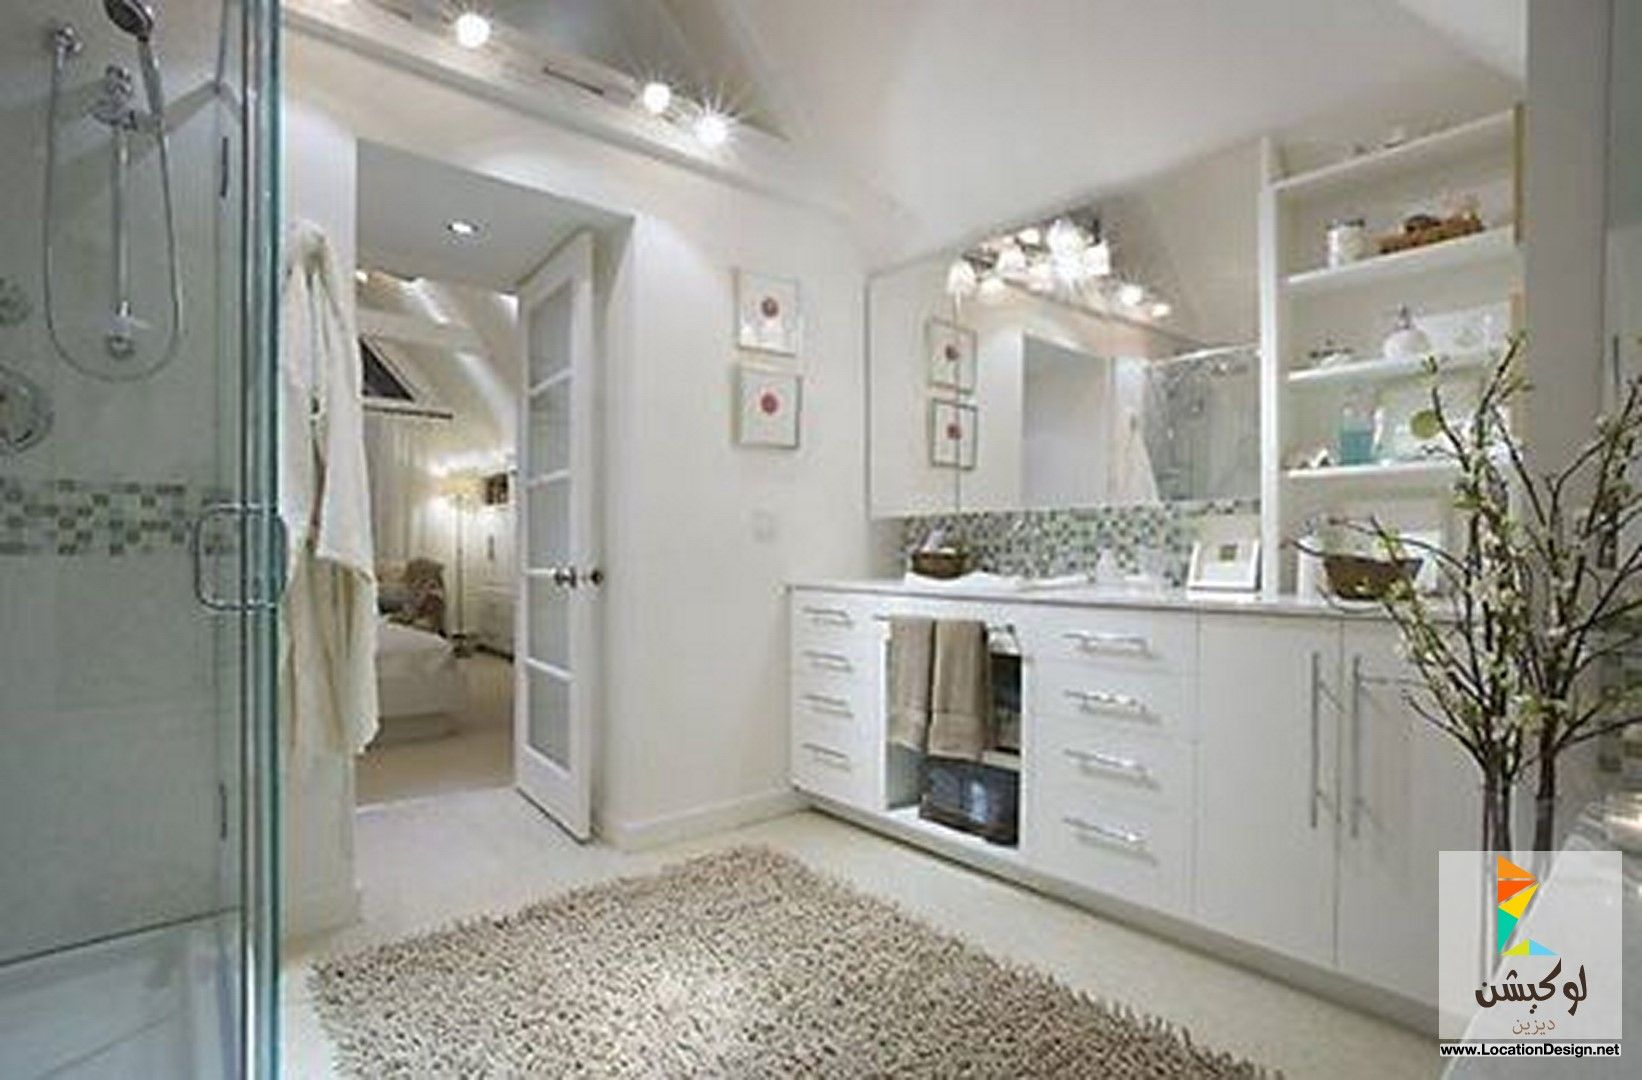 ديكورات حمامات حديثة صغيرة المساحة With Images Bathroom Design Small Bathroom Tile Designs Unique Bathroom Design